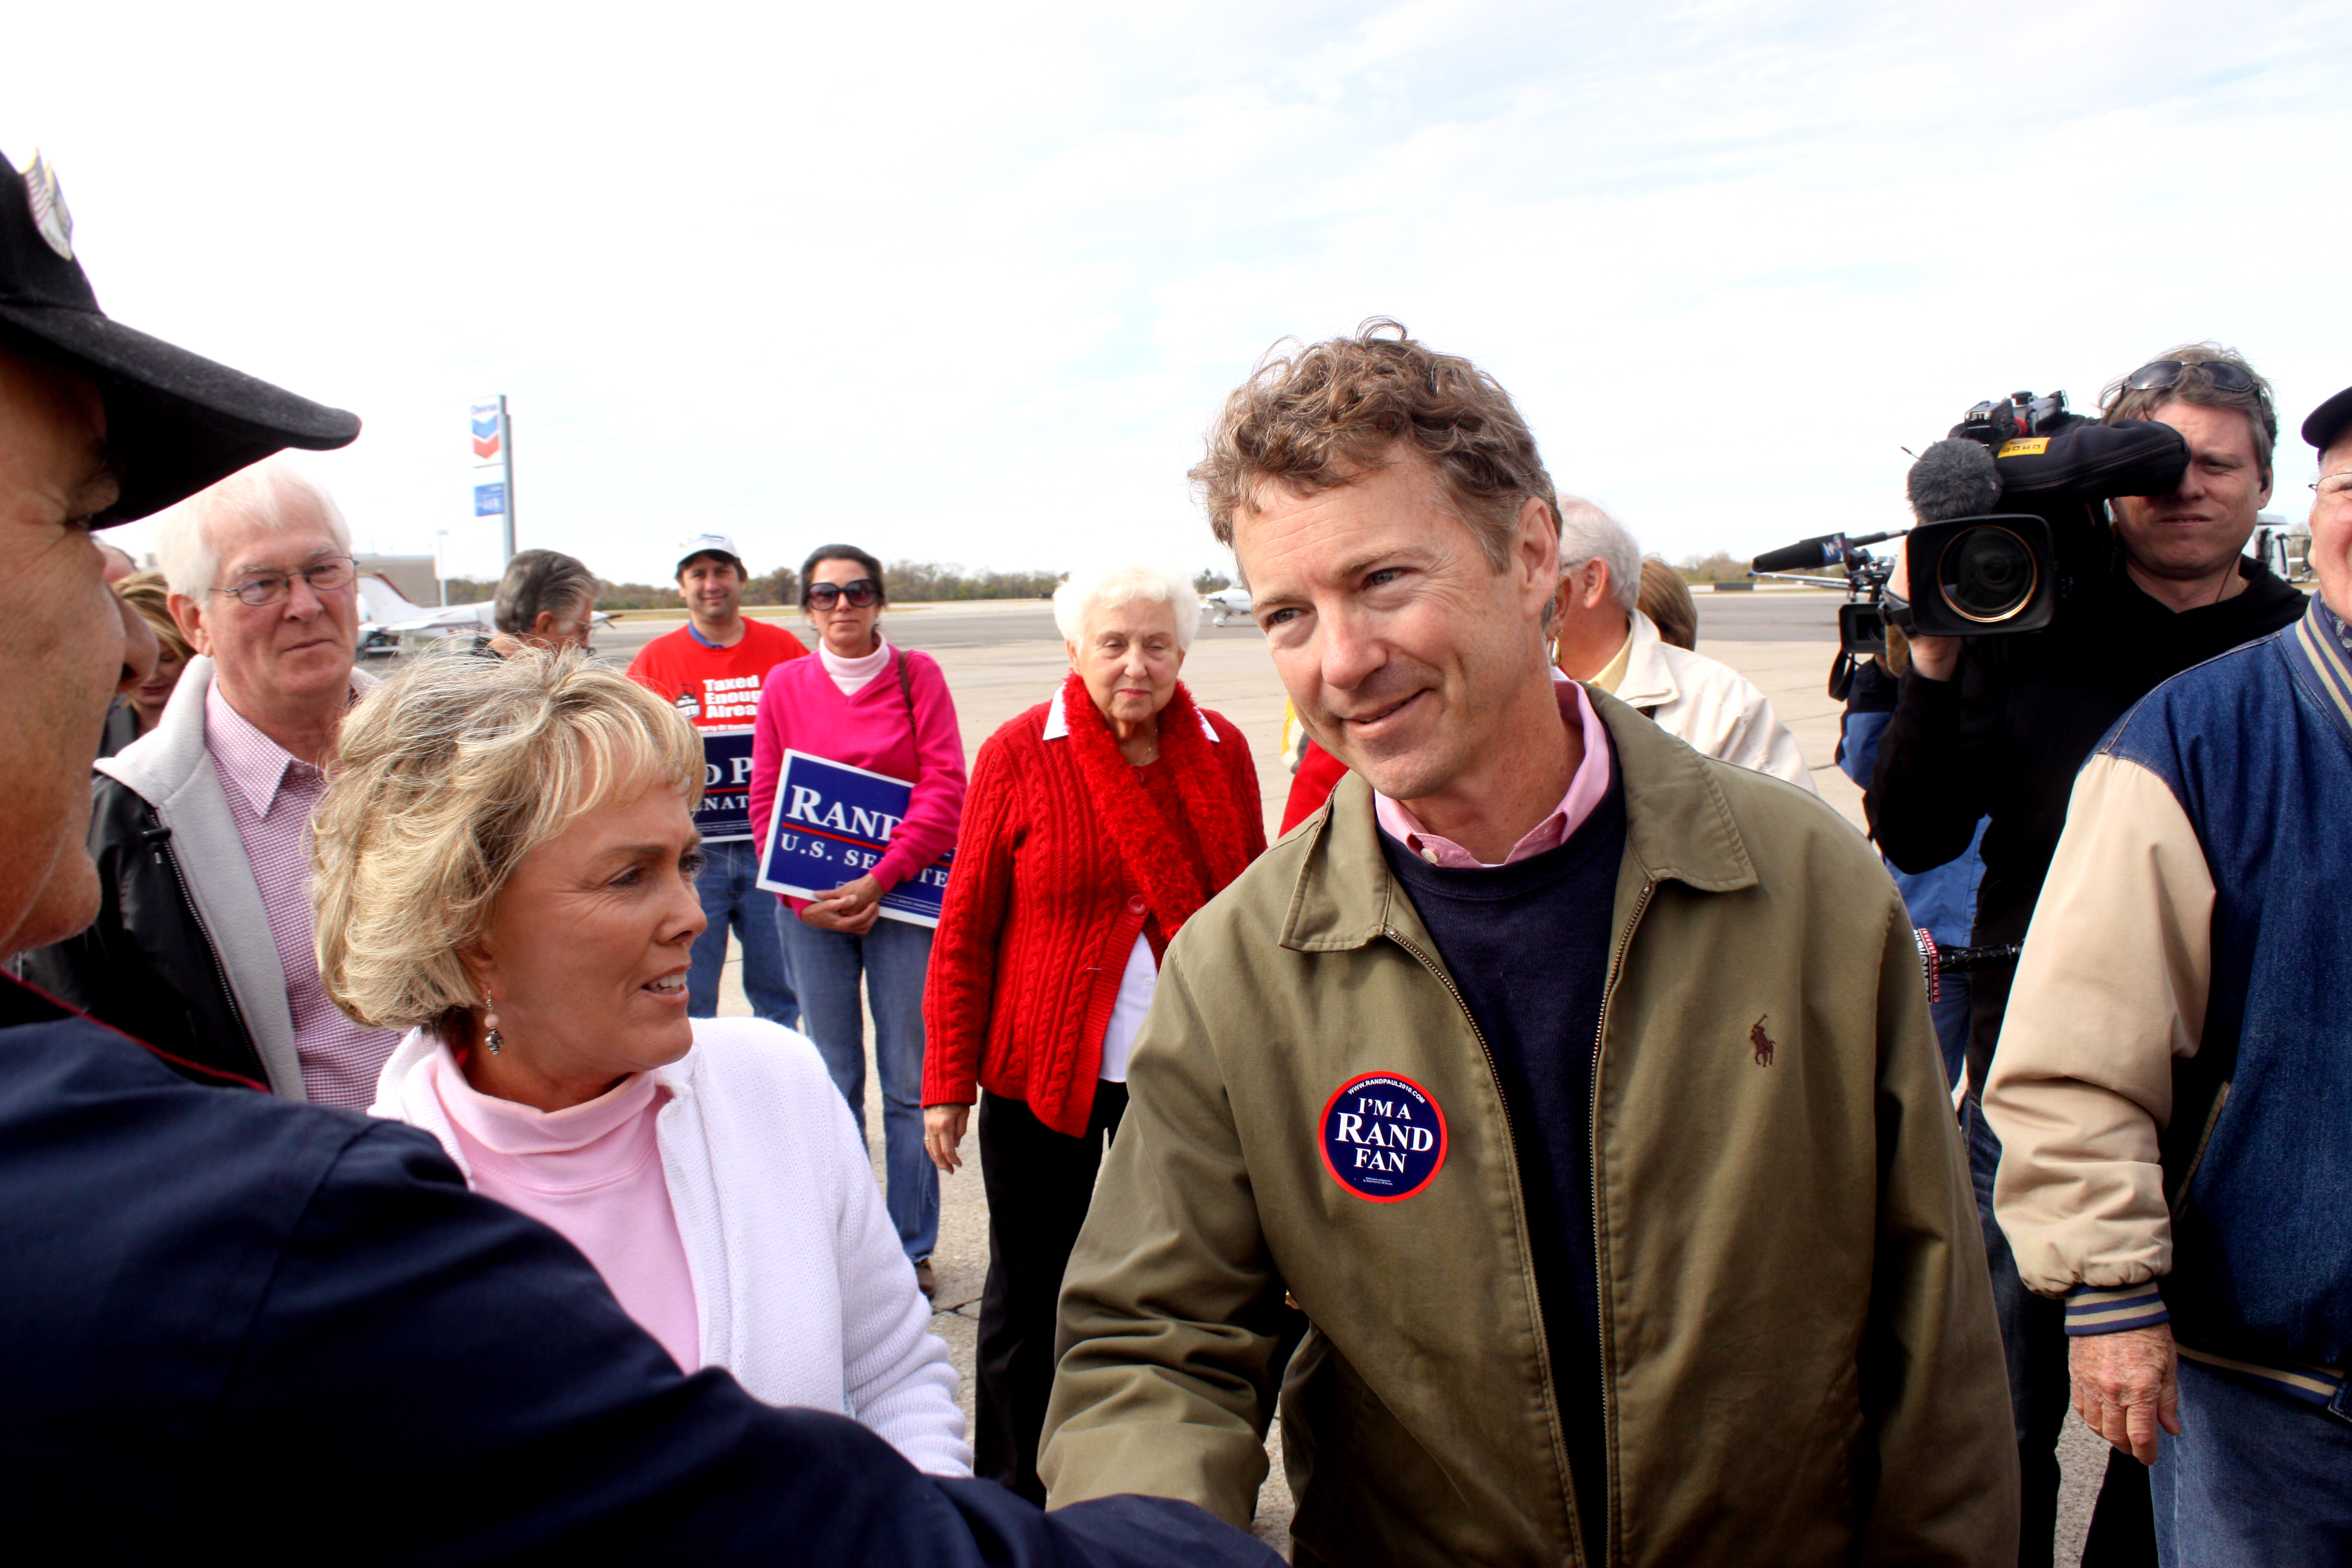 Rand paul date of birth in Melbourne